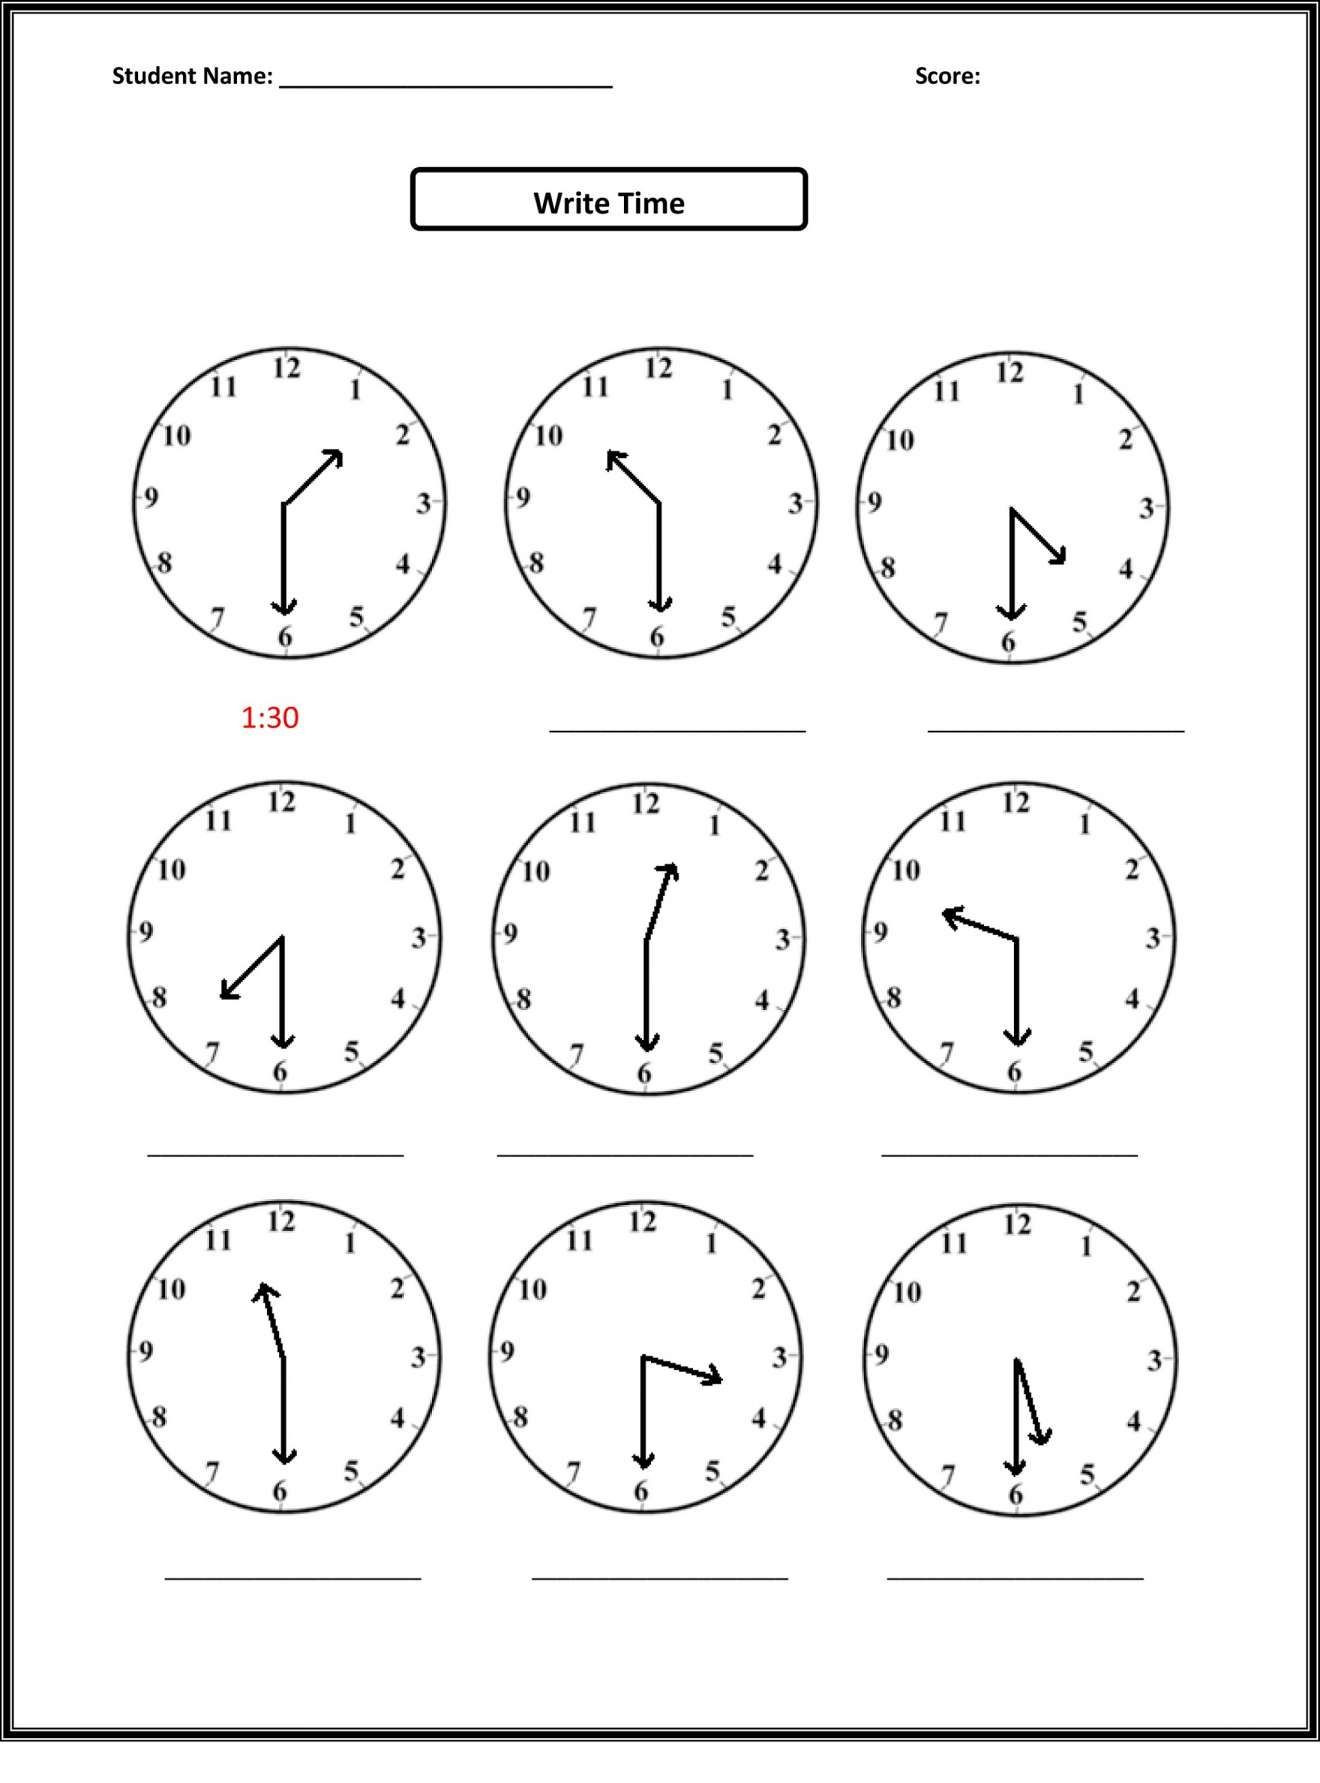 Elapsed Time Worksheets 3rd Grade Pin On Kids Worksheets